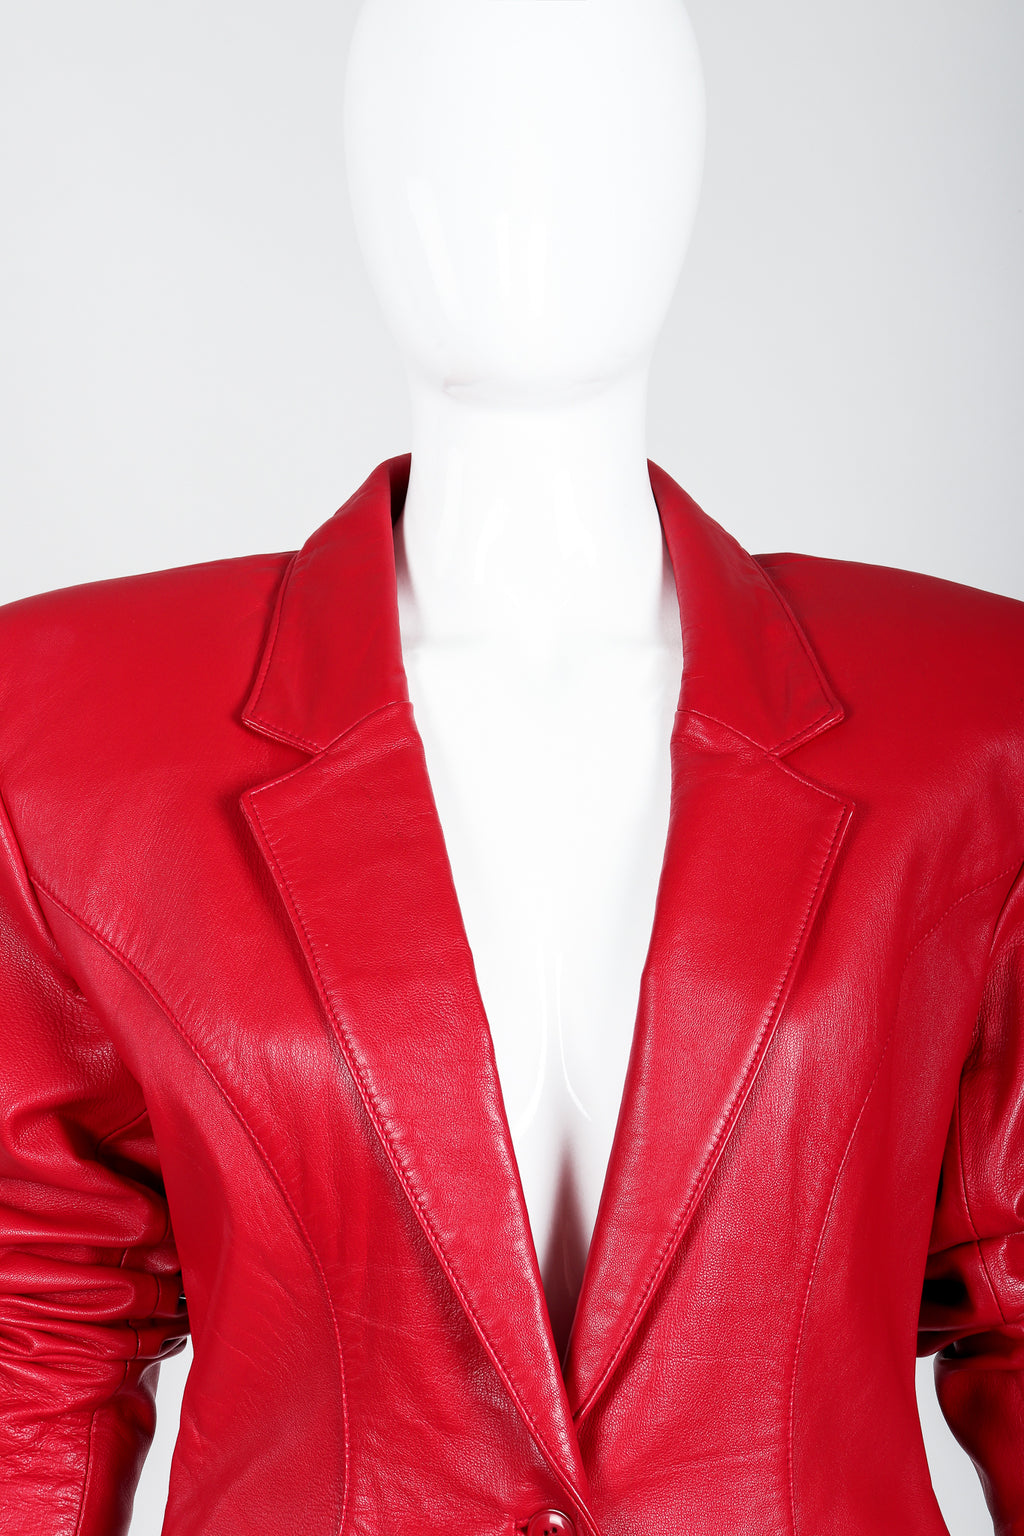 Vintage North Beach Leather by Michael Hoban Sharp Red Leather Jacket on Mannequin at Recess